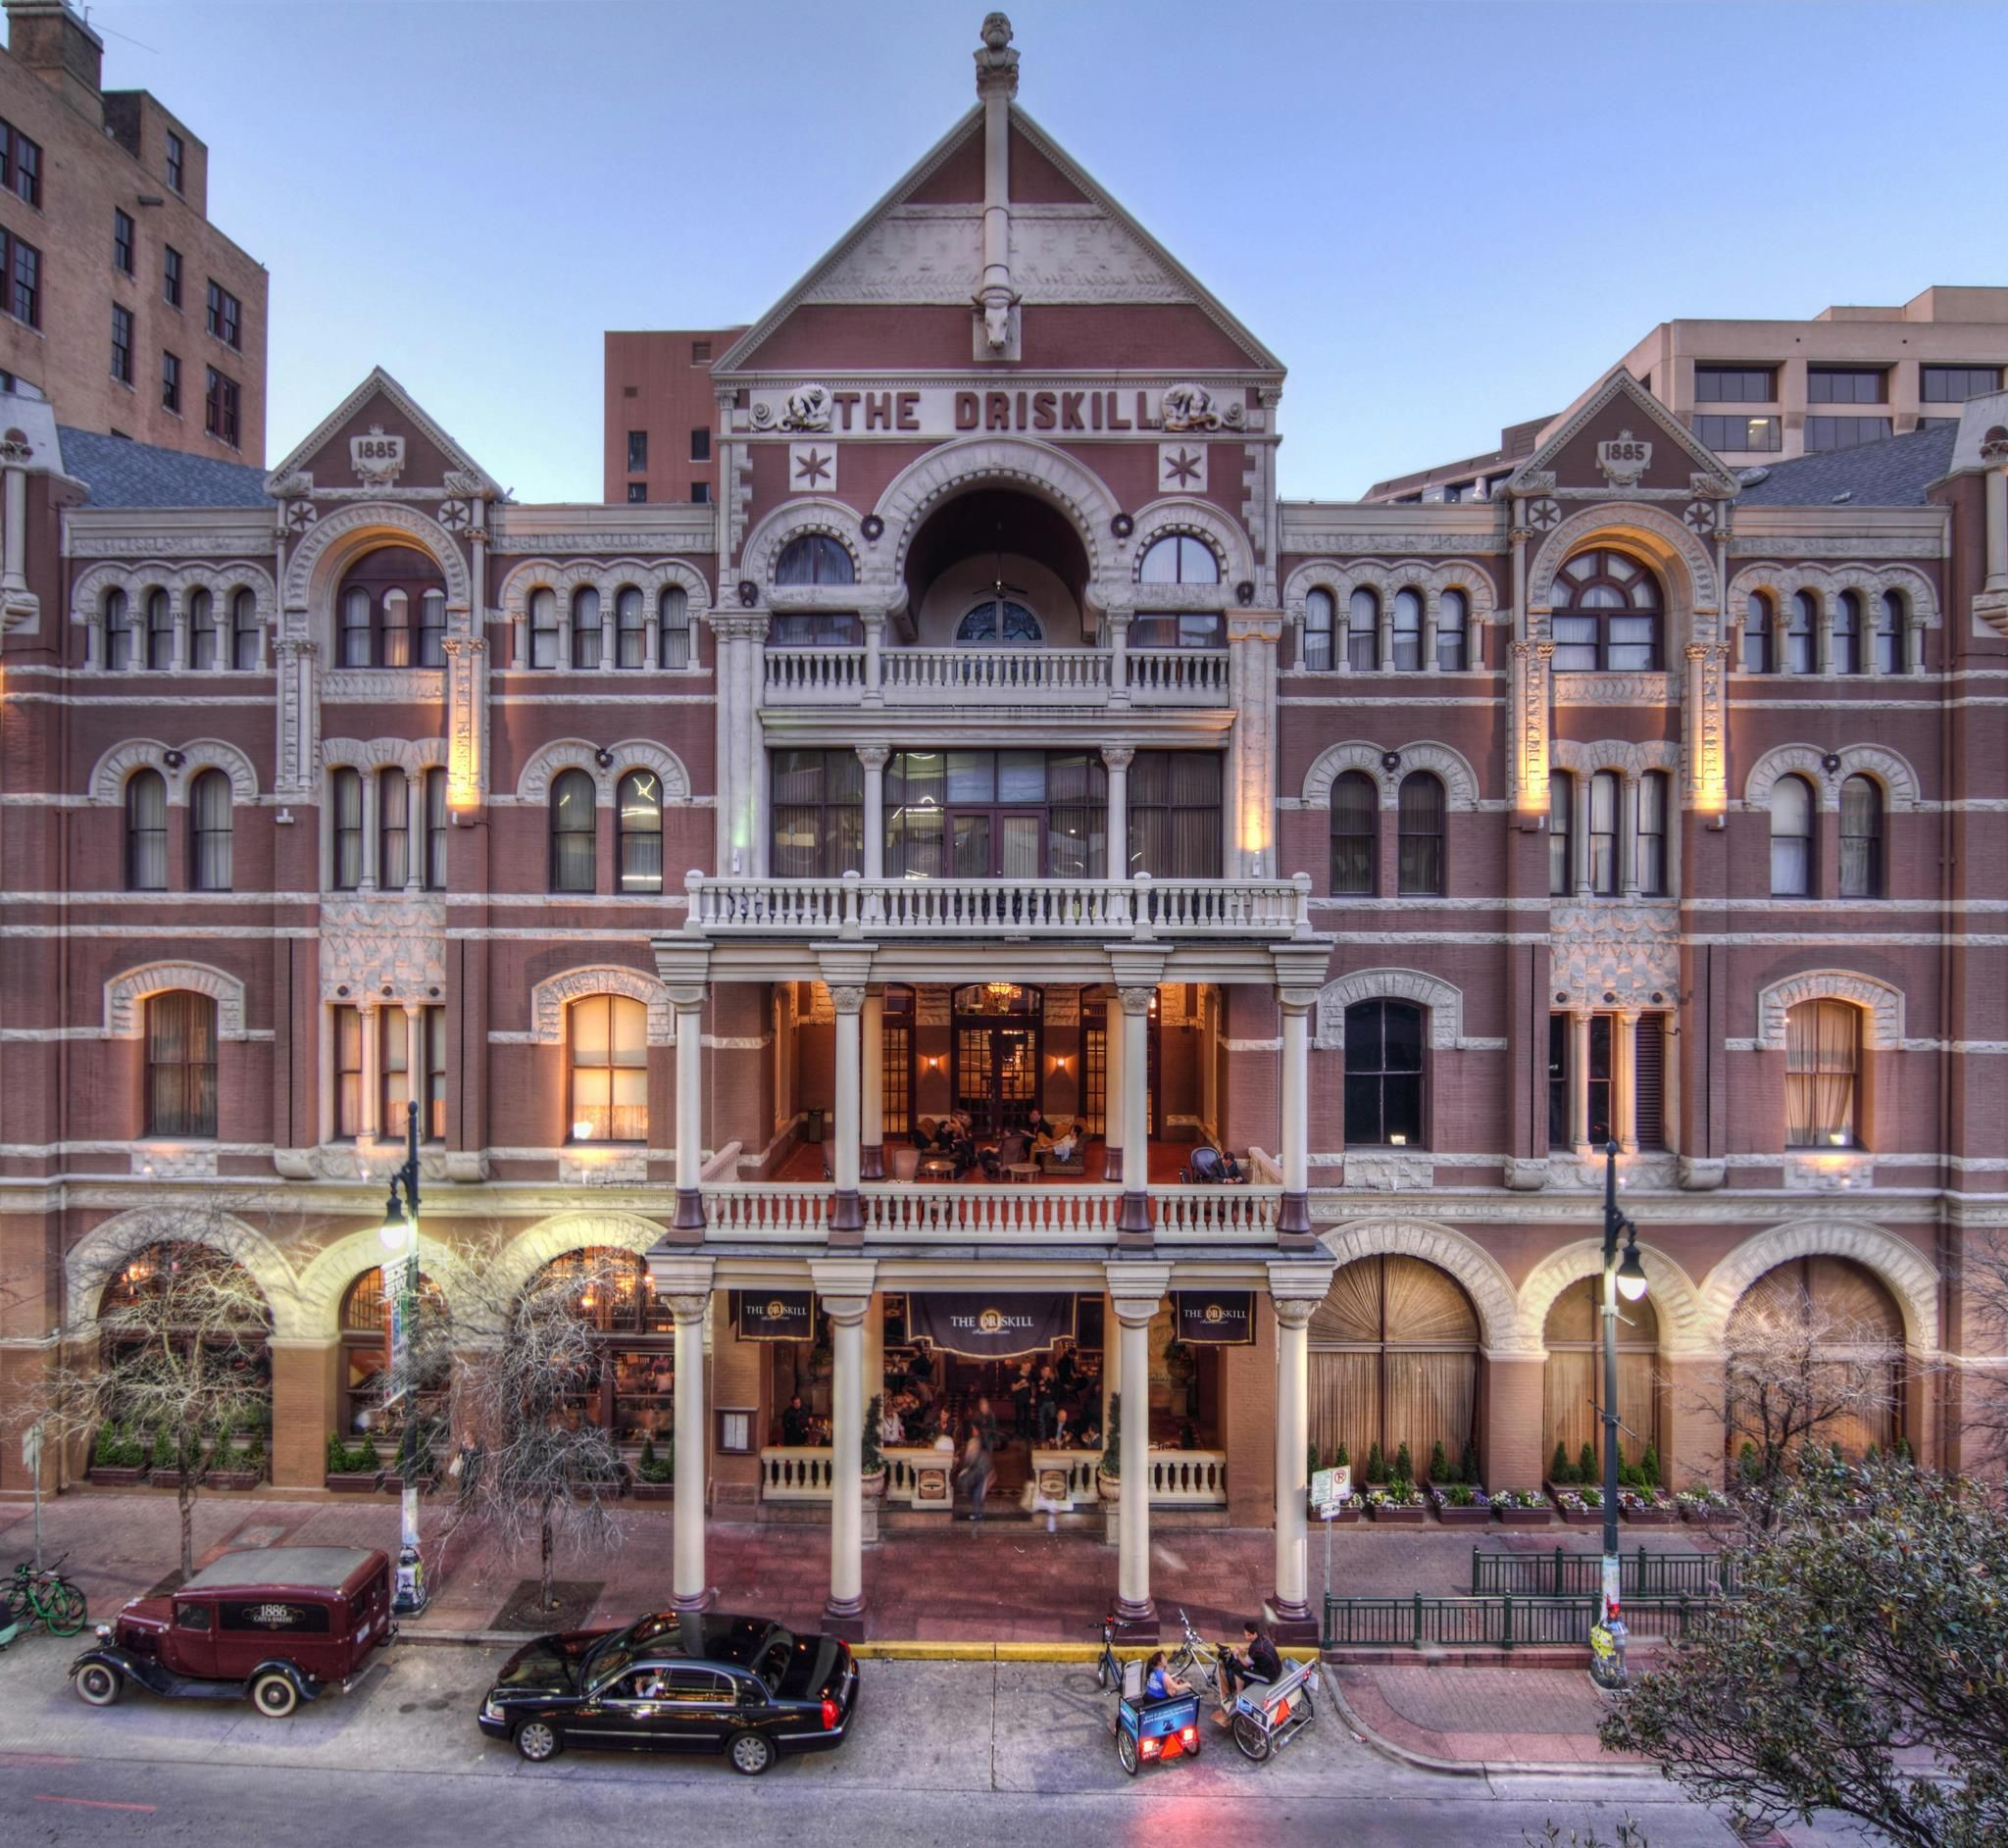 The Driskill Hotel 6th Street Austin Texas